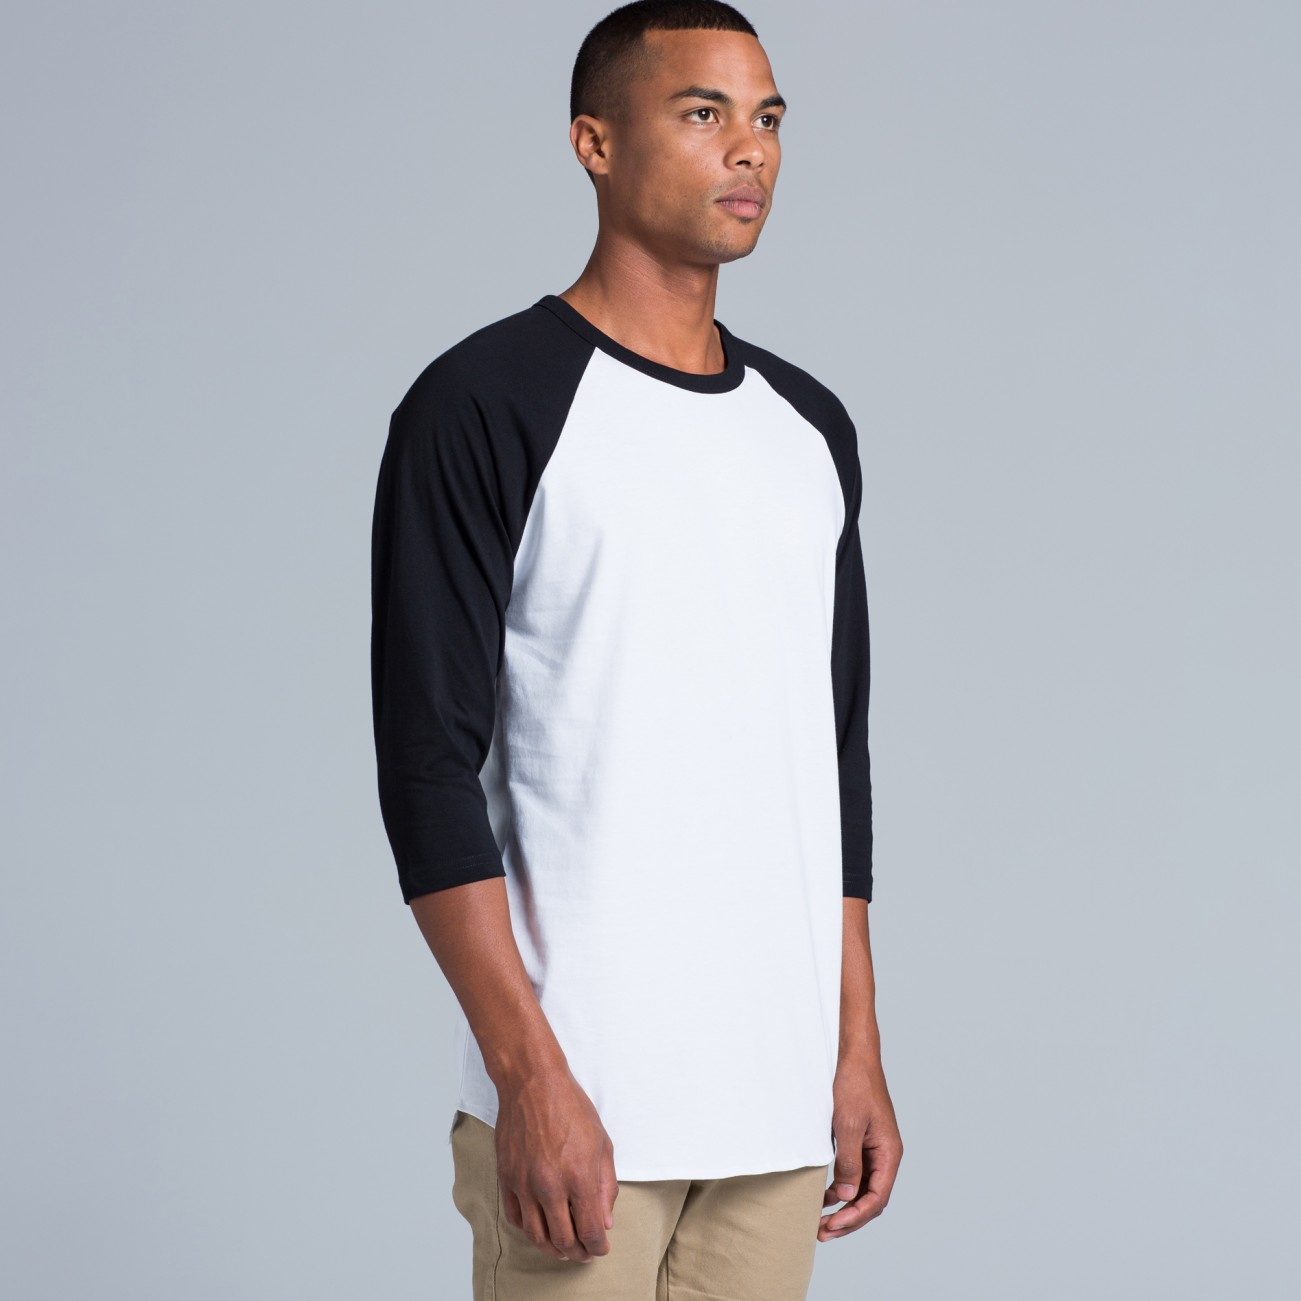 AS Colour 5012 Raglan Tee 3/4 sleeve print